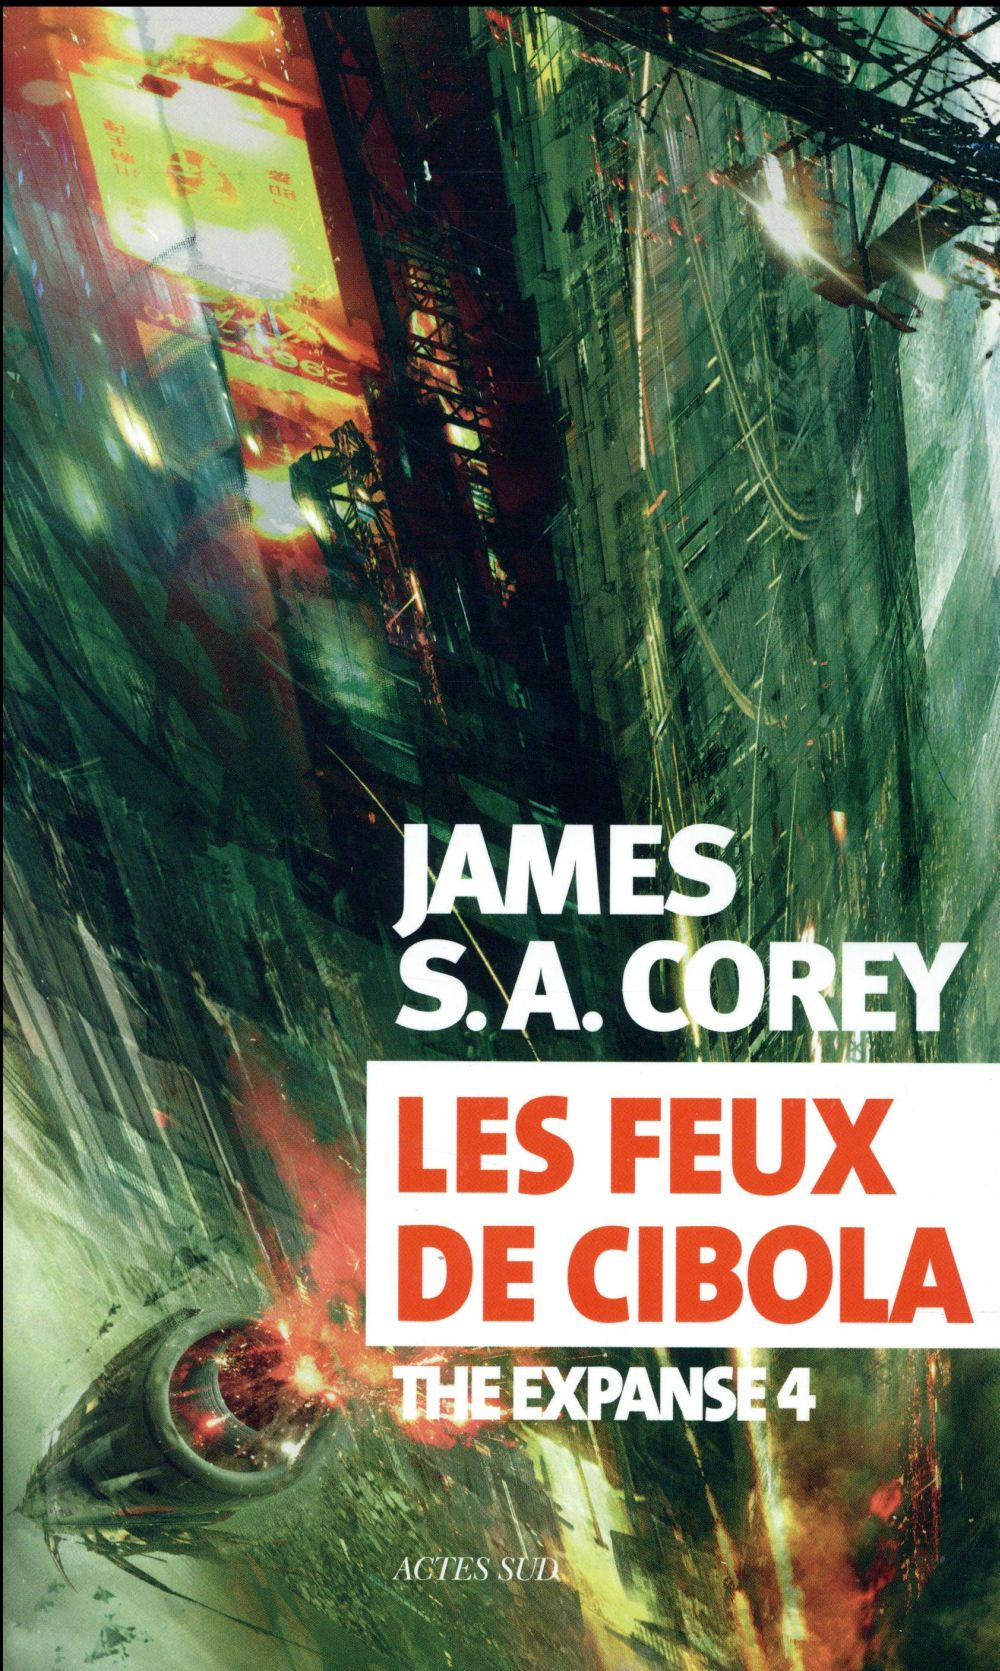 The expanse Les feux de Cibola Vol.4